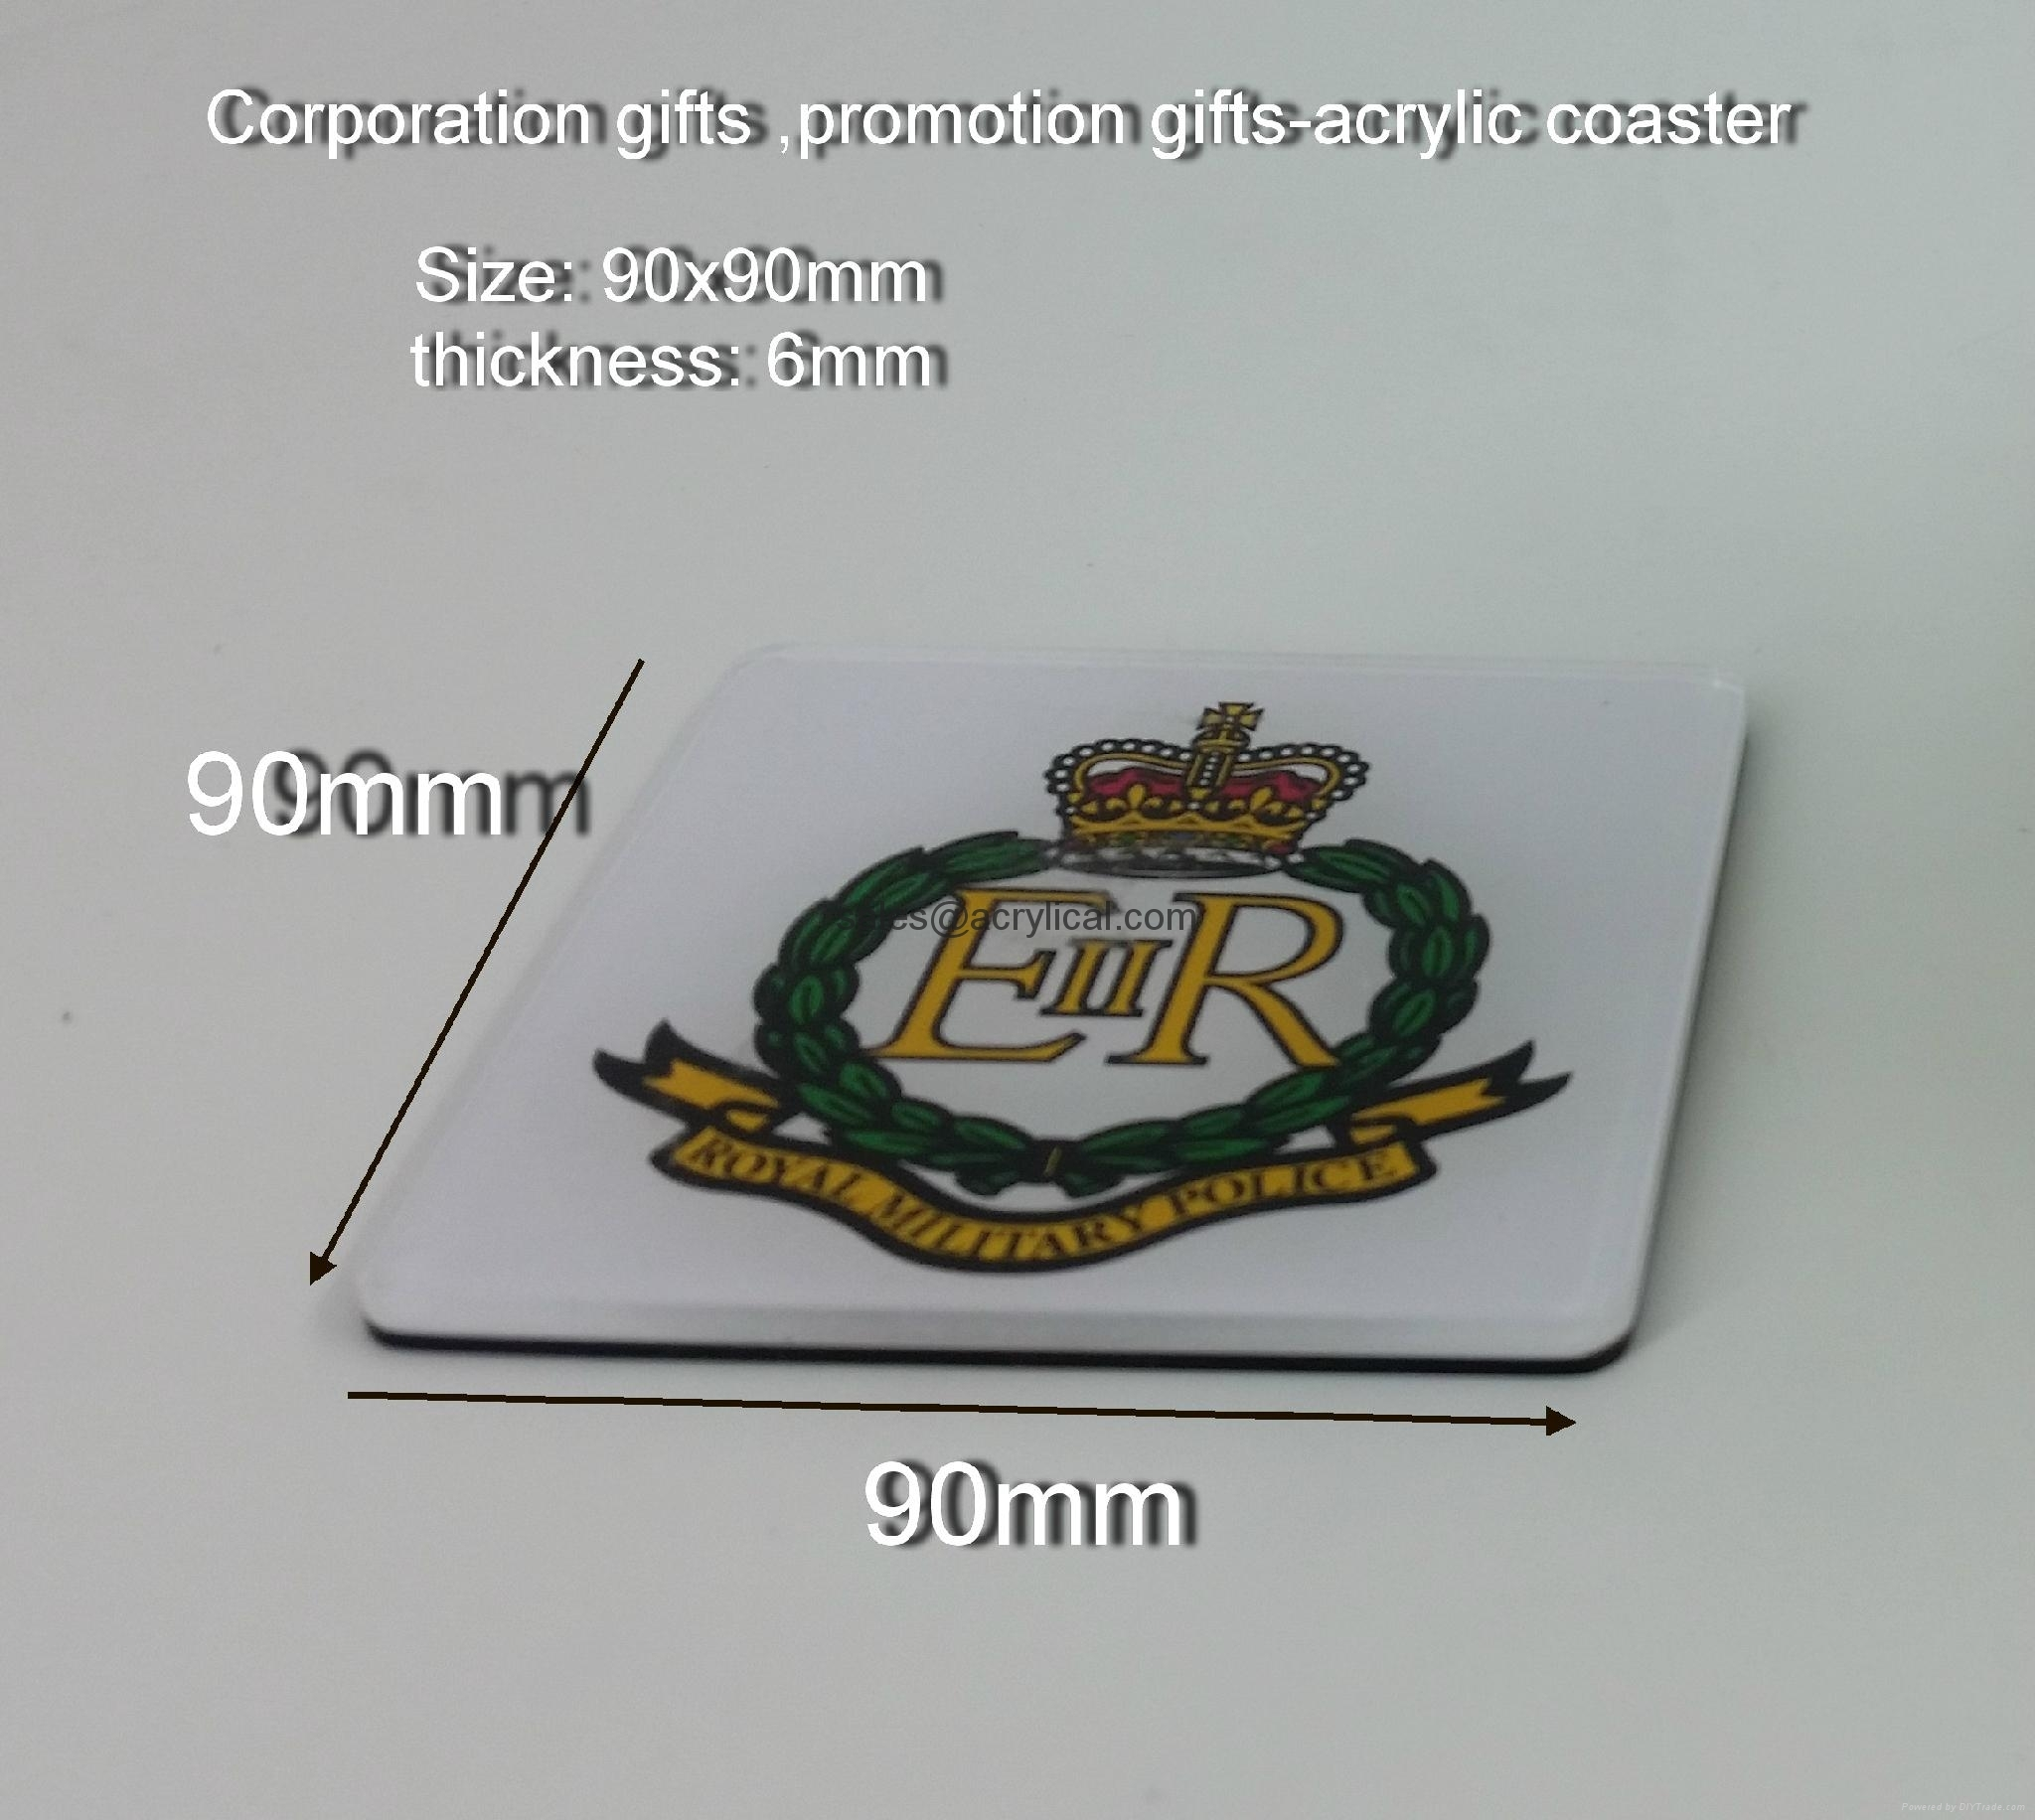 Military coasters, army, veteran gift, serving soldier gift, military memorabilia, personalised coaster, Military insignia coasters - the perfect gift for a Current or Ex-Members of the UK Armed Forces